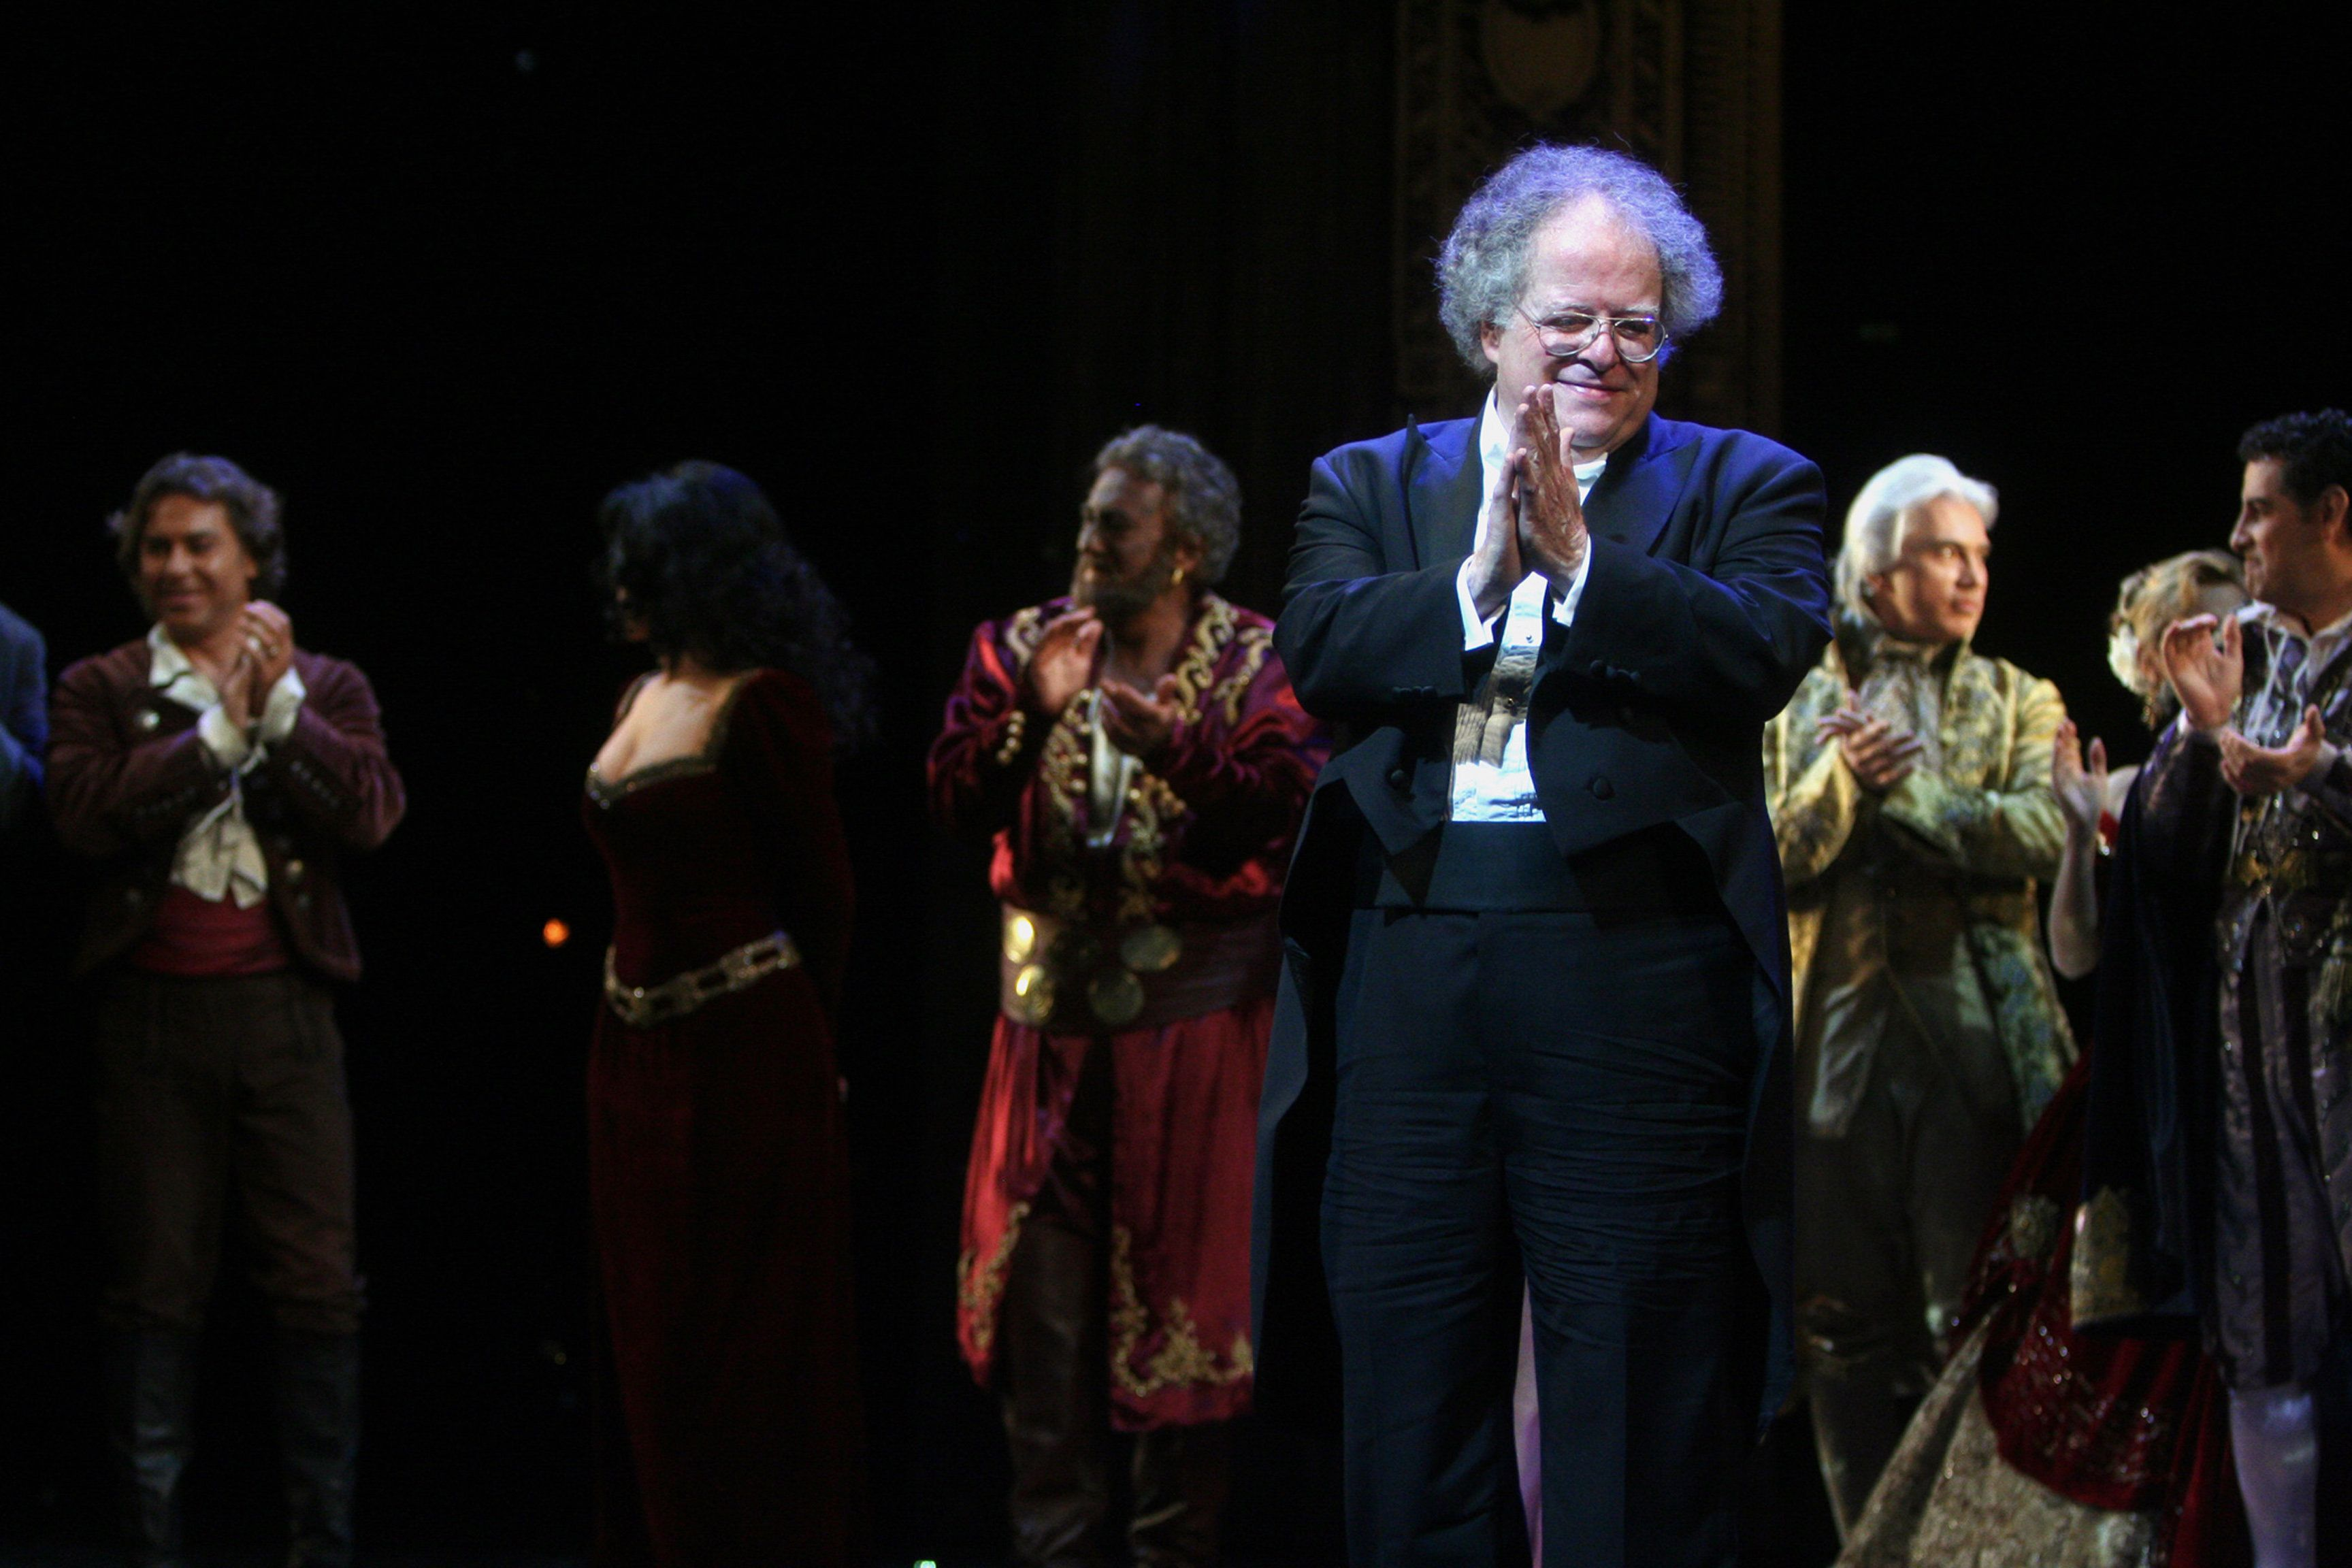 New York's Metropolitan Opera fires its director James Levine for sexual harassment